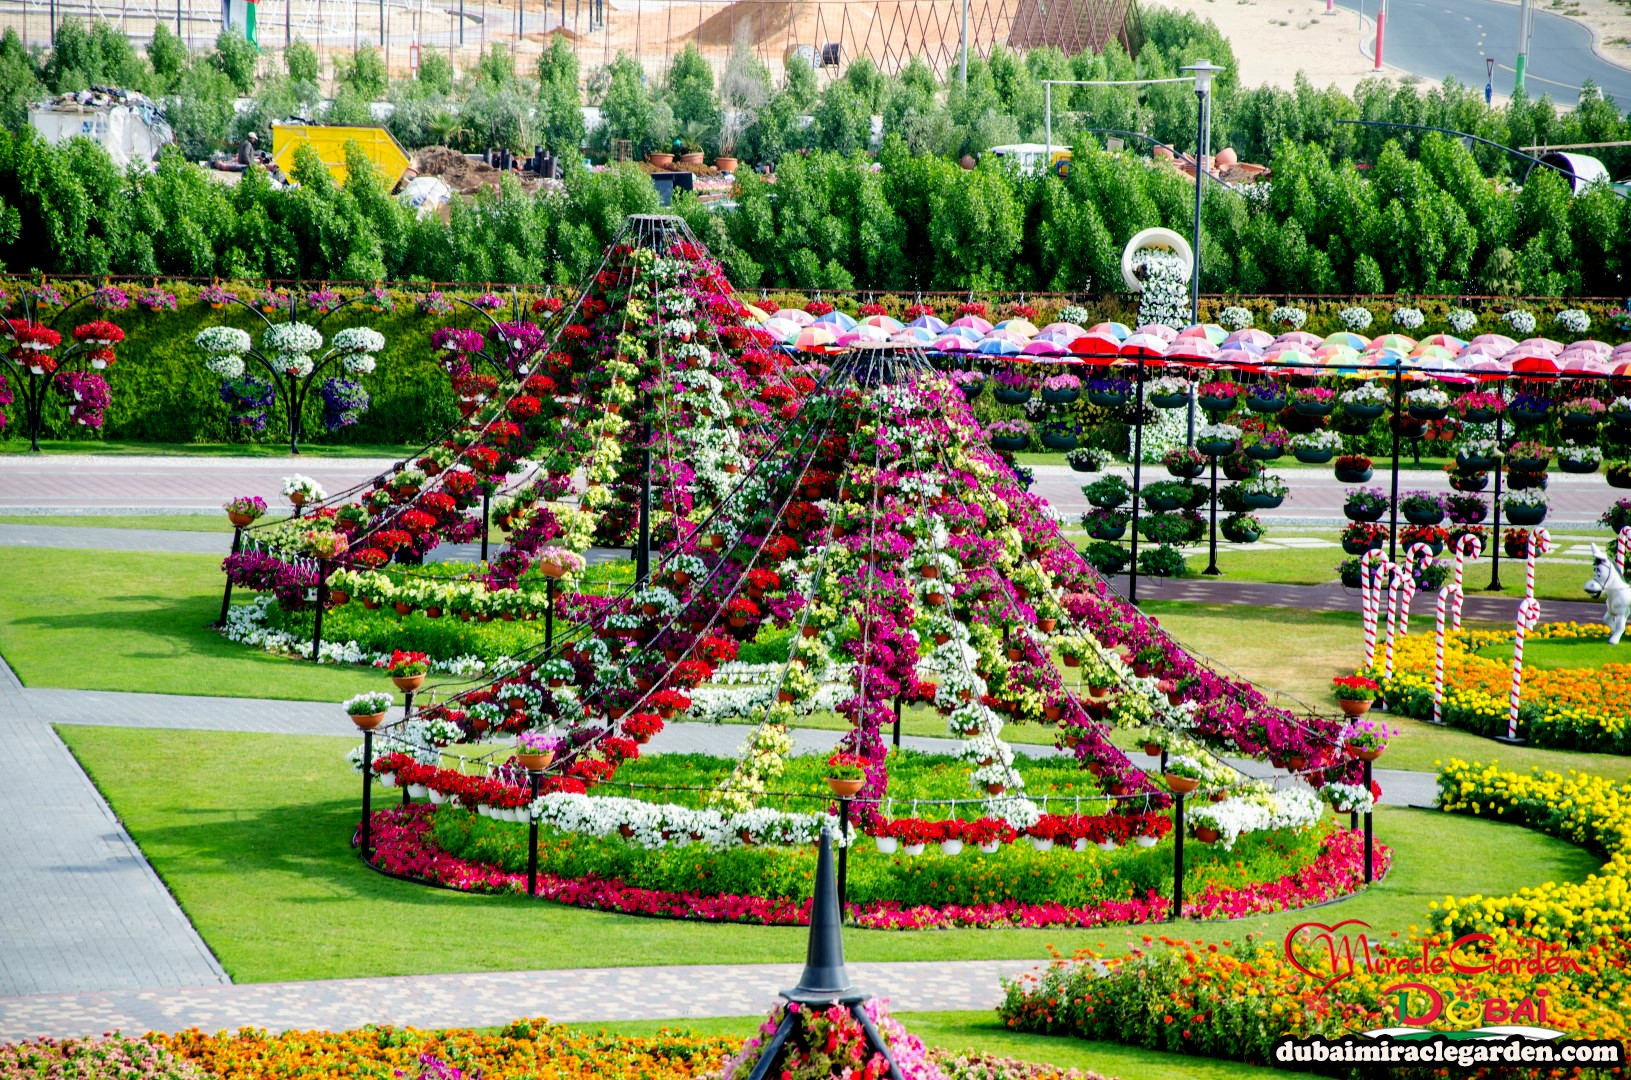 Dubai miracle garden the world 39 s biggest natural flower for The landscape gardener